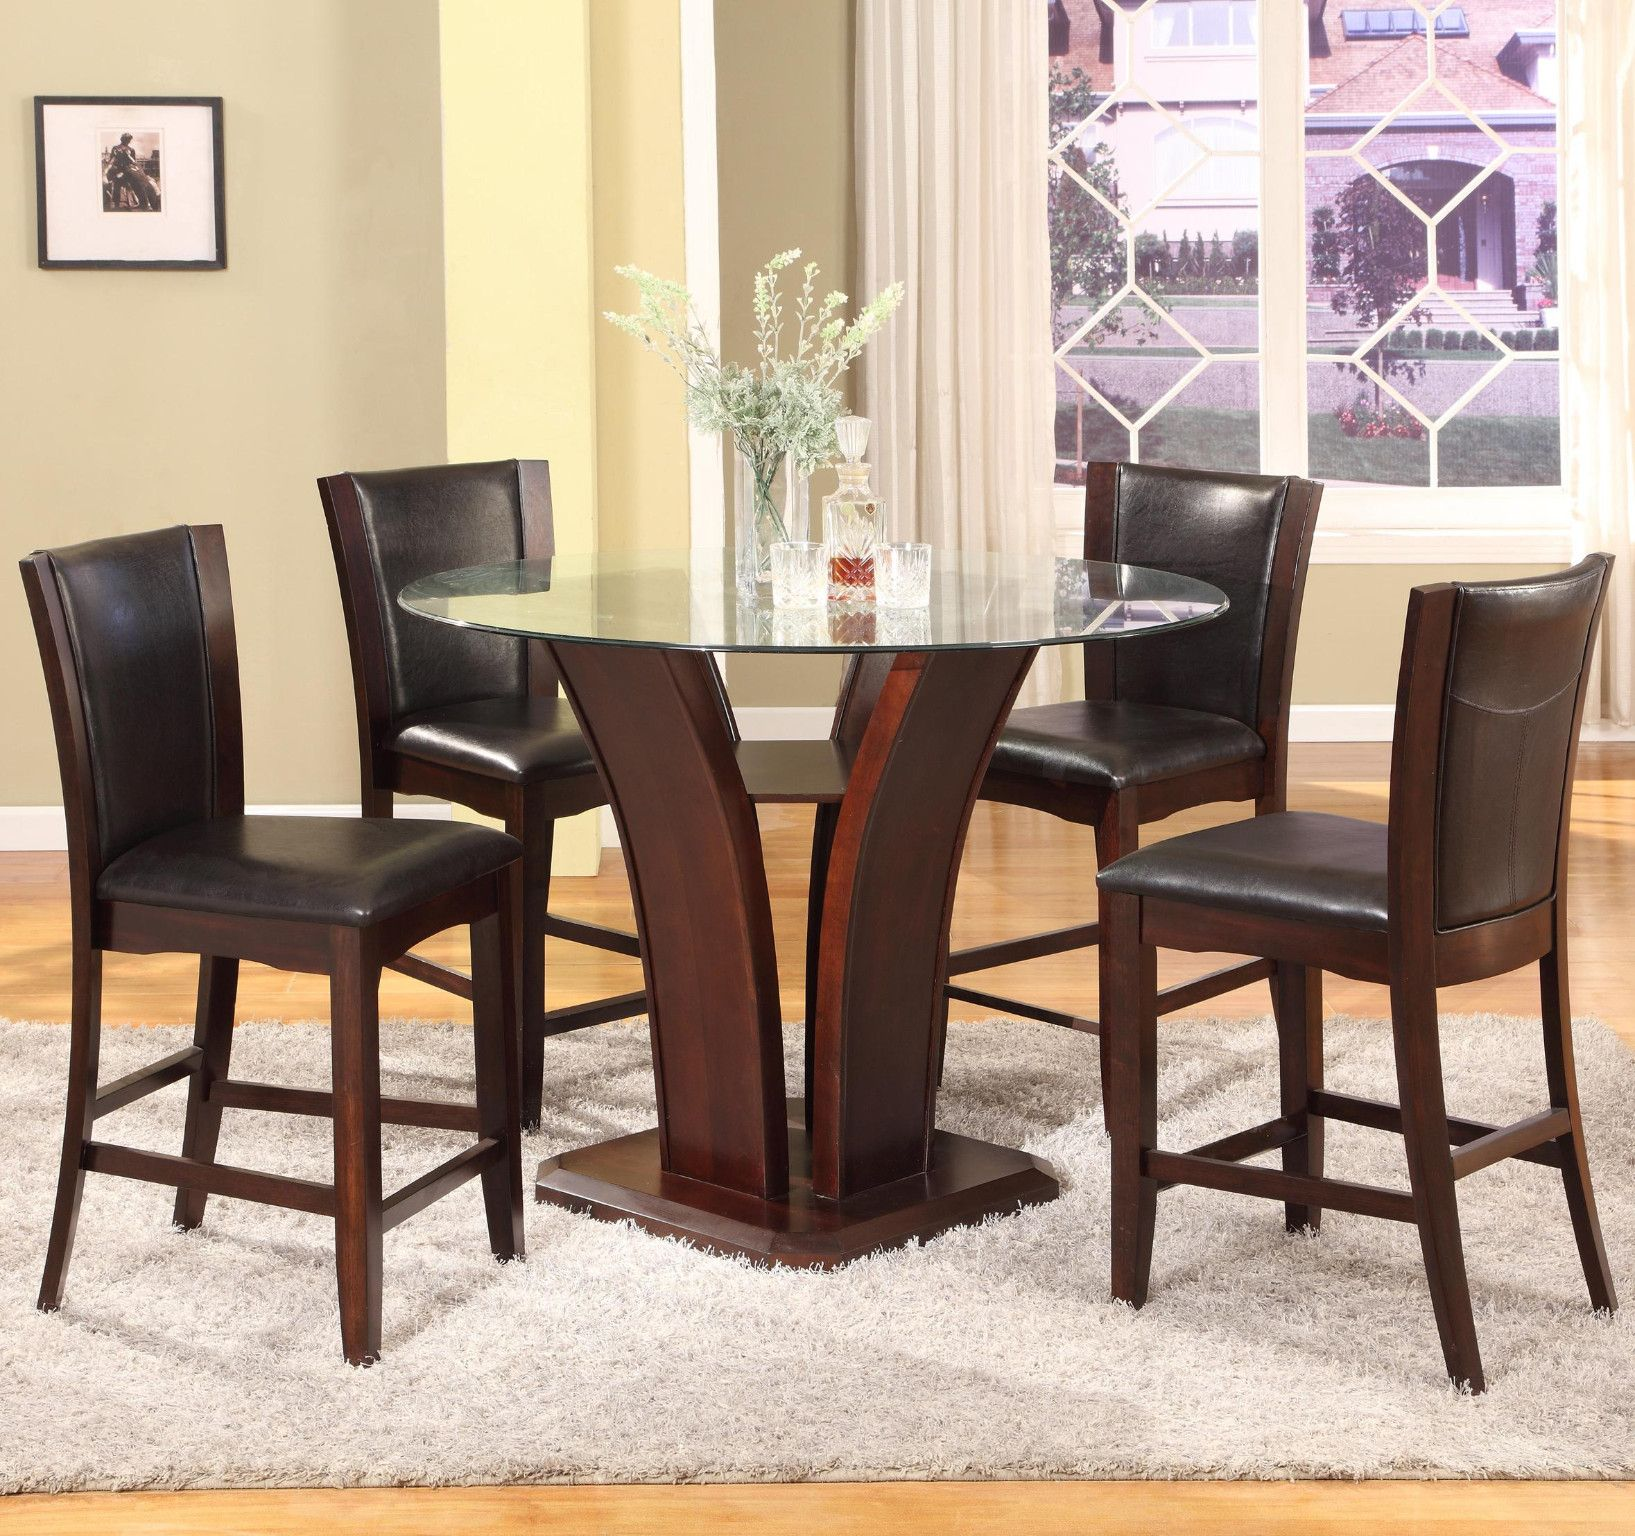 Camelia Espresso 5 Piece Counter Height Table And 4 Chairs 649 00 Table 300 00 54 Dia X 36 H Glass Top Dining Table Dining Room Sets Dining Table